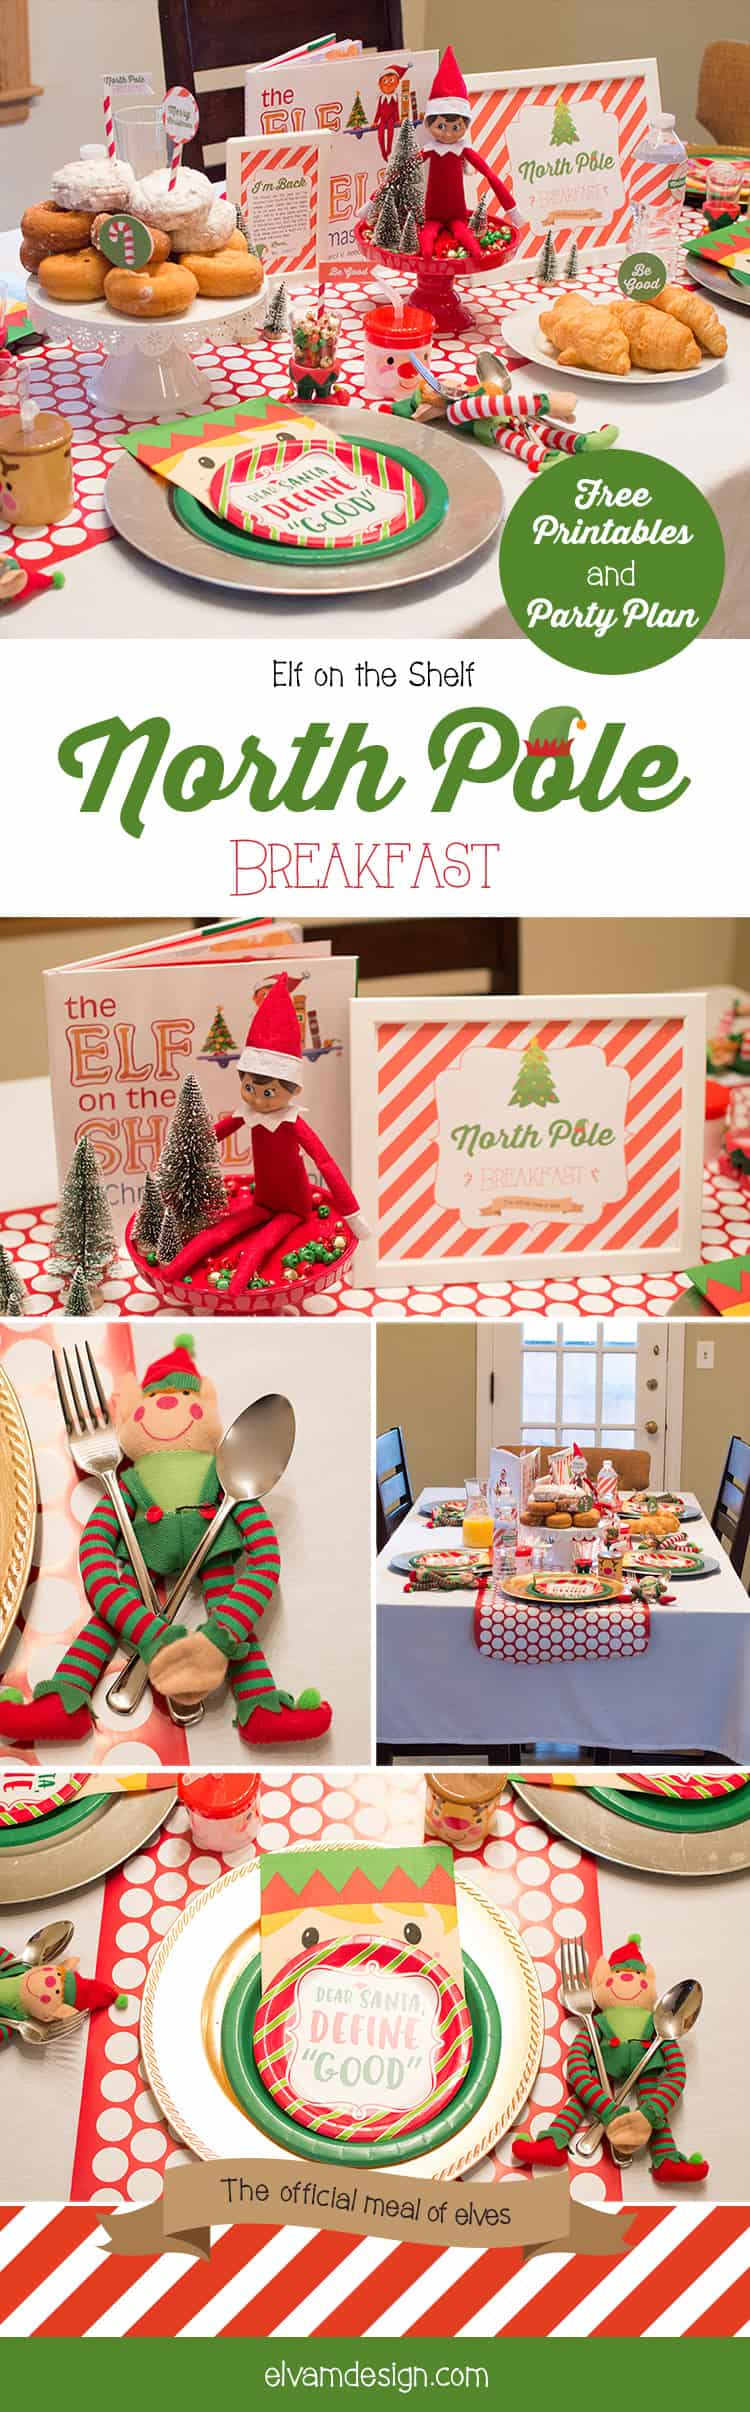 Elf on the Shelf North Pole Breakfast Party